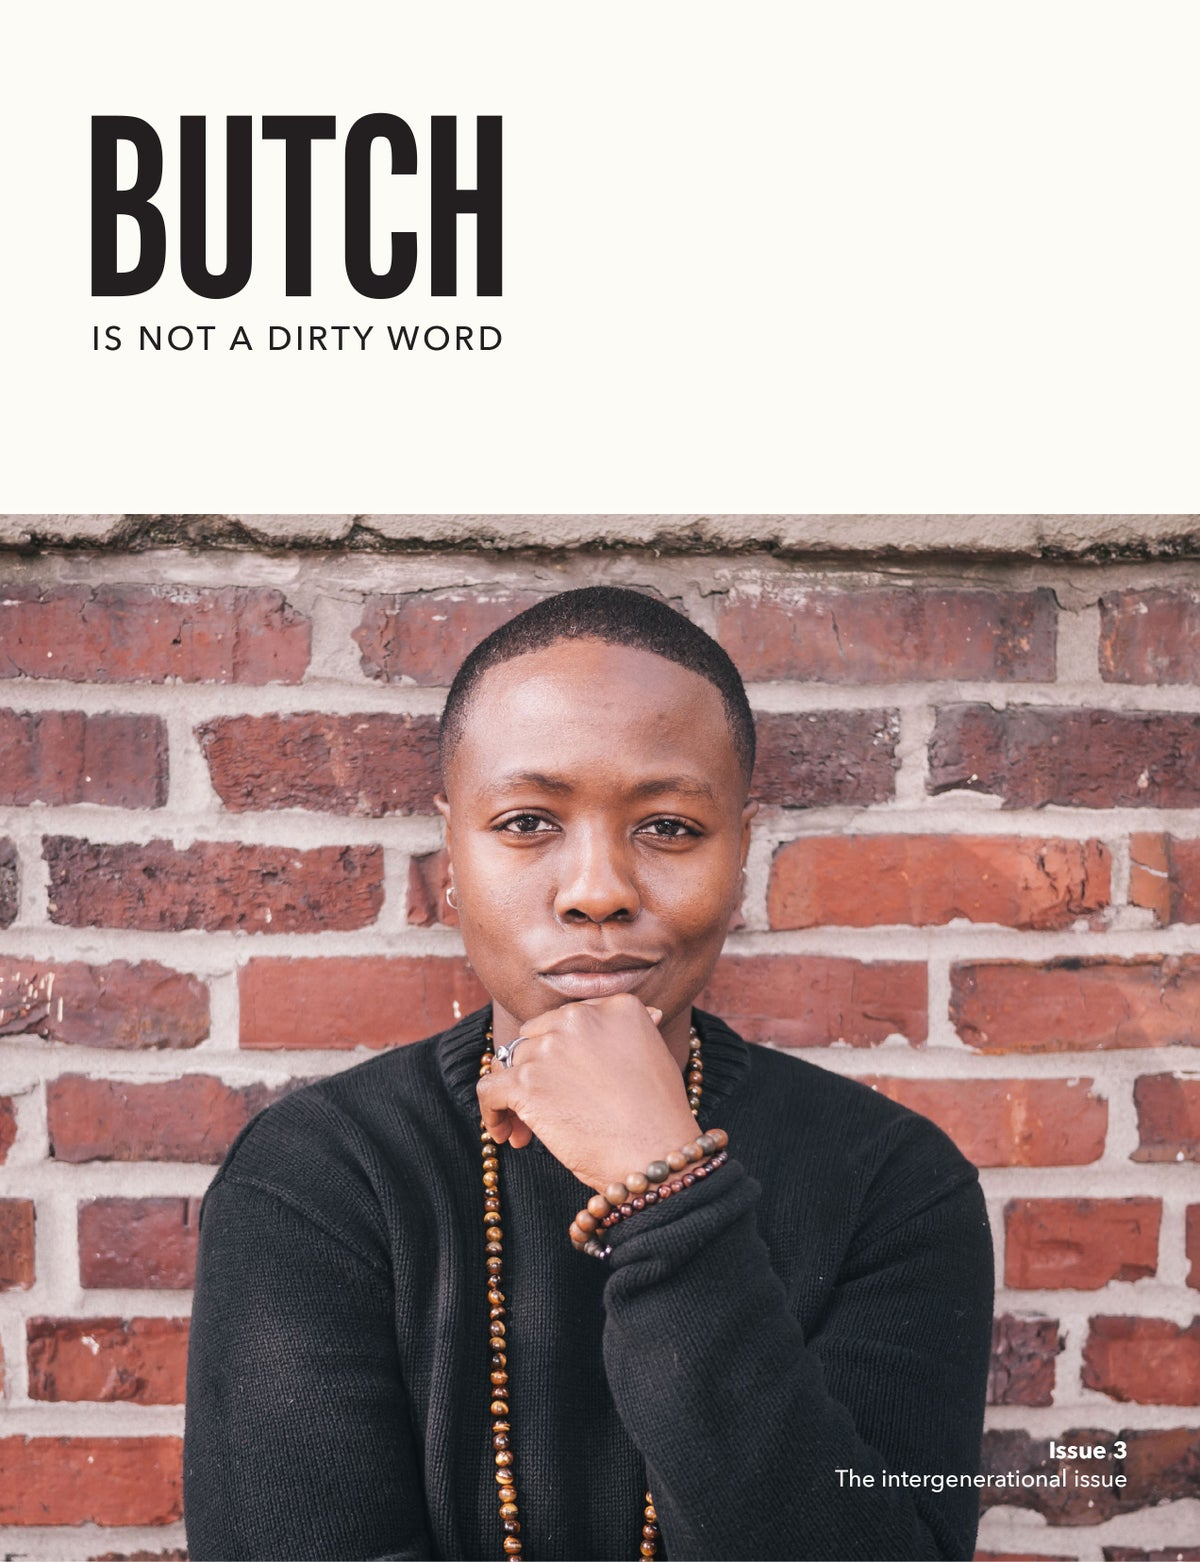 Image of ISSUE #3 - INTERGENERATIONAL - butch dyke, butch lesbian